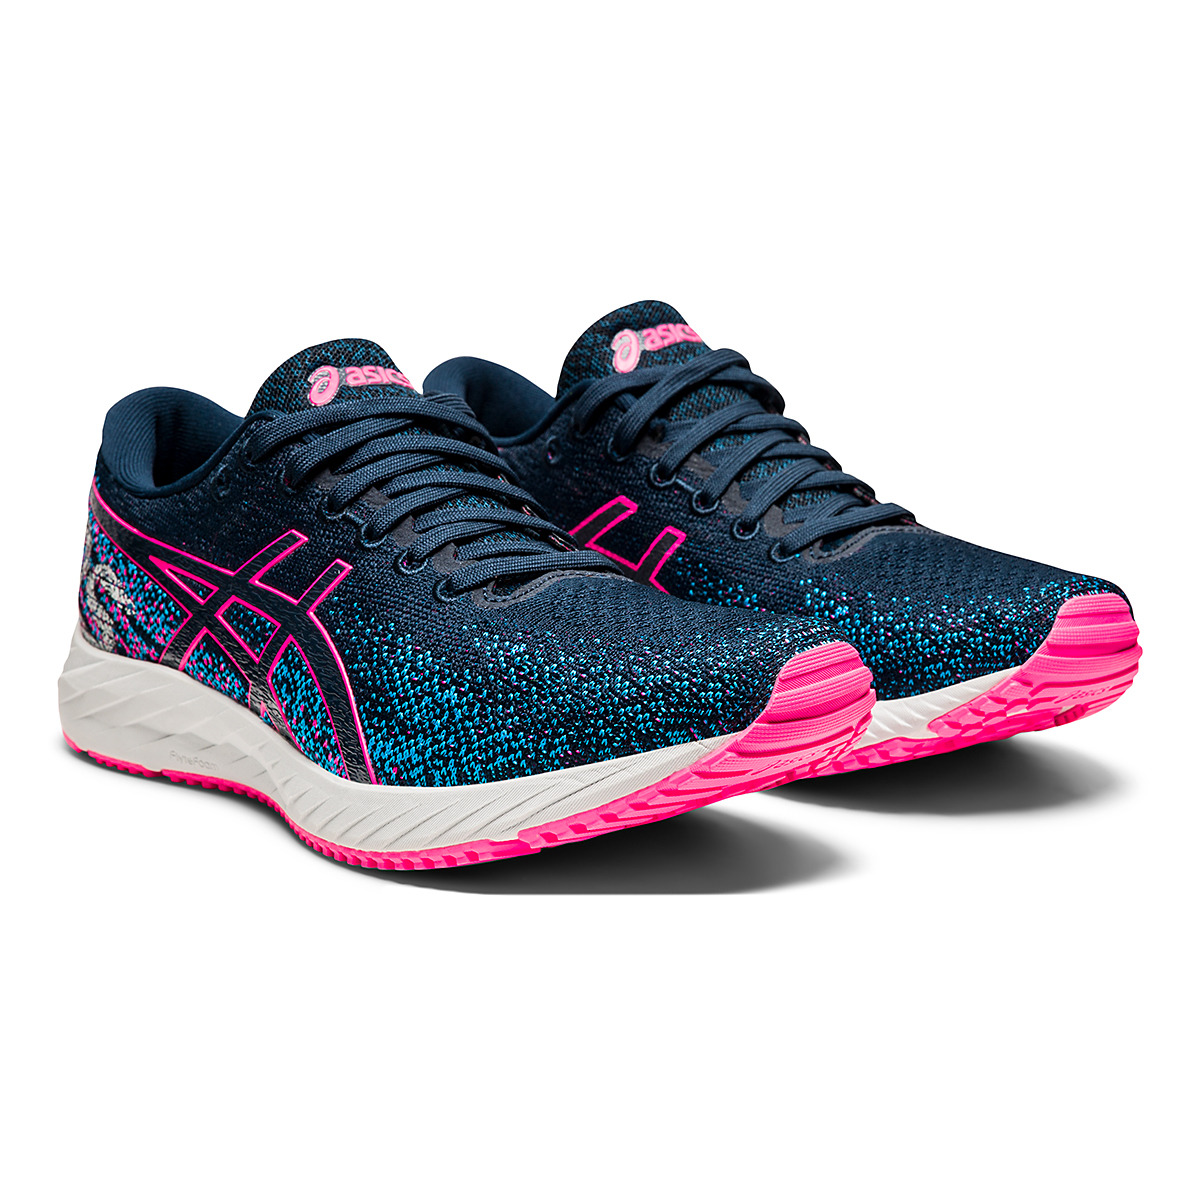 Women's Asics Gel-DS Trainer 26 Running Shoe - Color: French Blue/Hot Pink - Size: 5 - Width: Regular, French Blue/Hot Pink, large, image 3